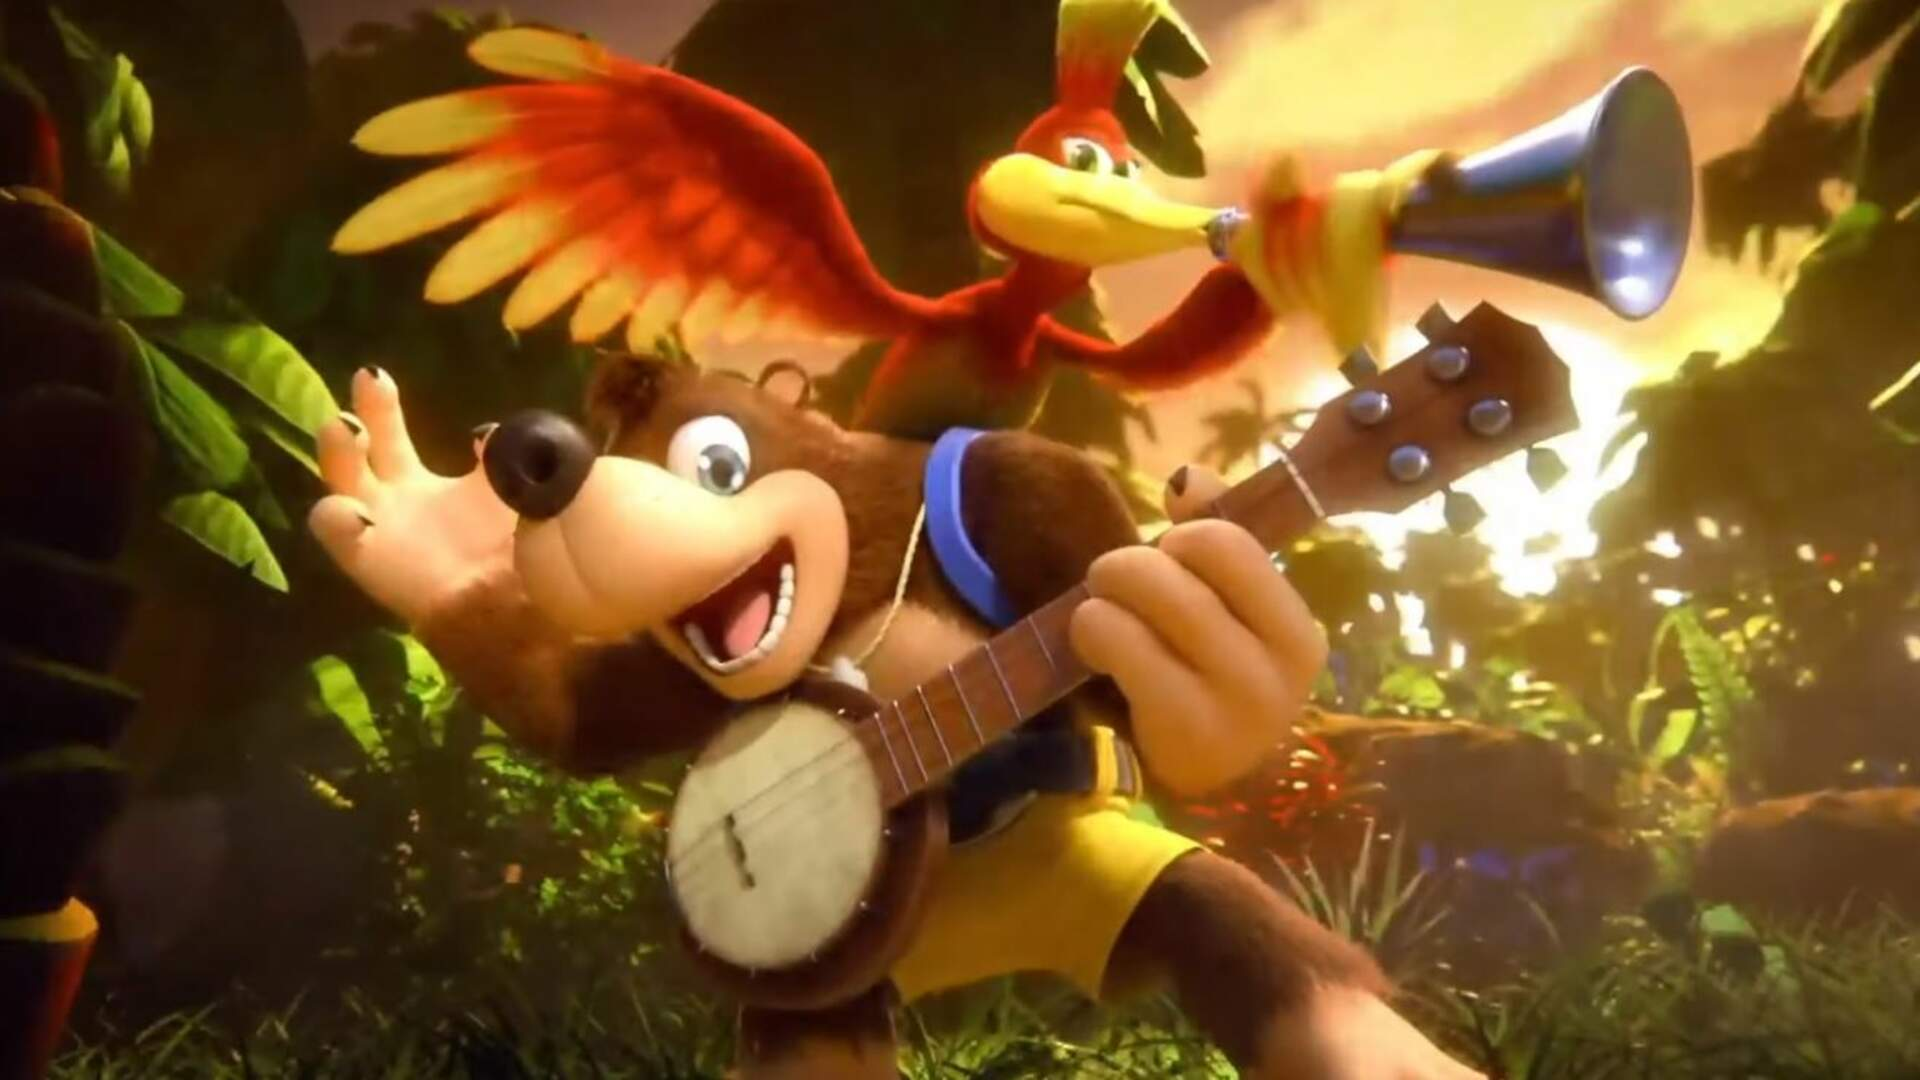 Banjo-Kazooie is Out For Super Smash Bros. Ultimate Today